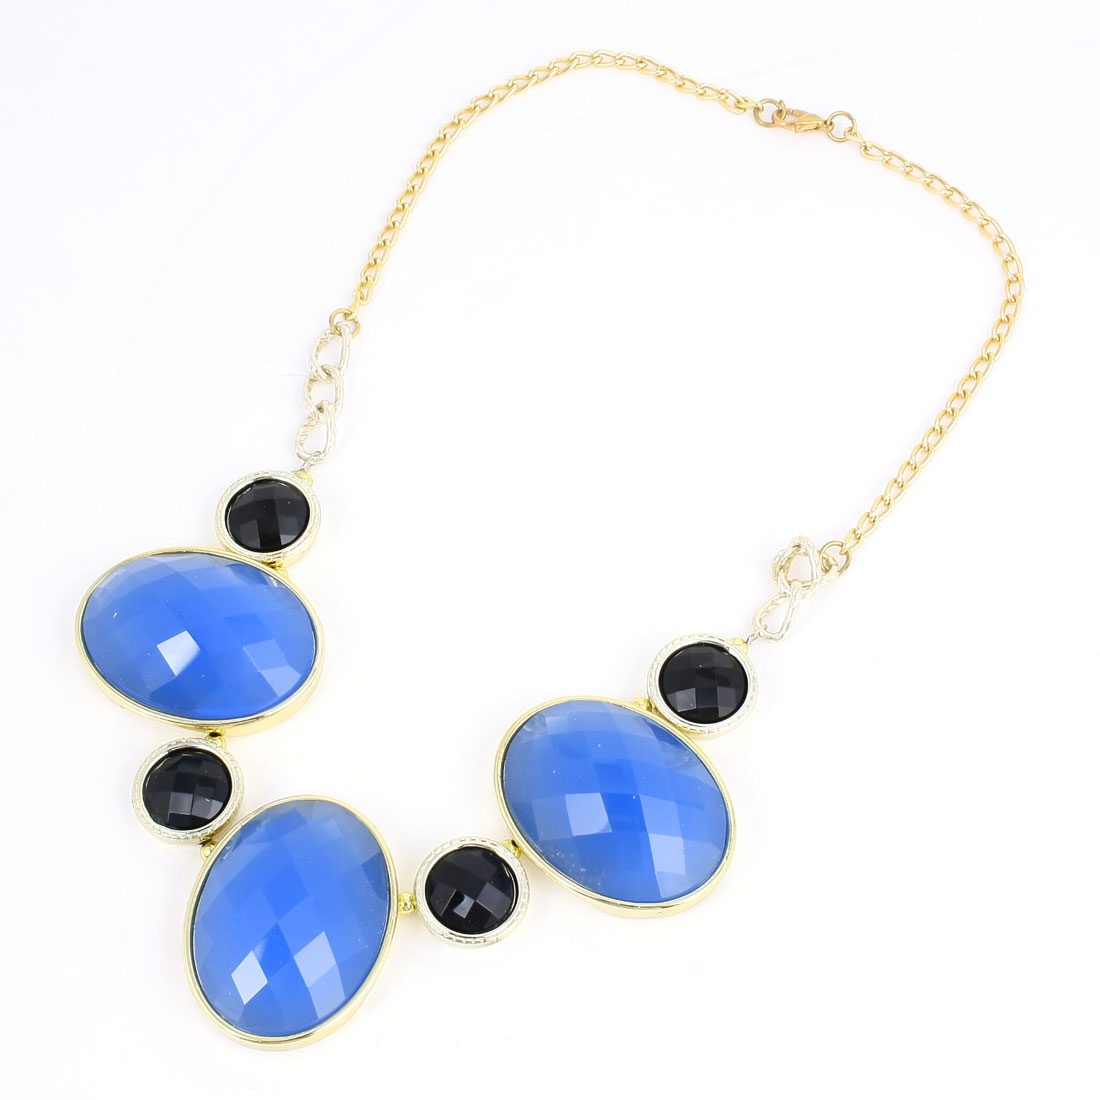 Blue Black Oval Shaped Faux Crystal Decor Bib Necklace for Ladies Woman